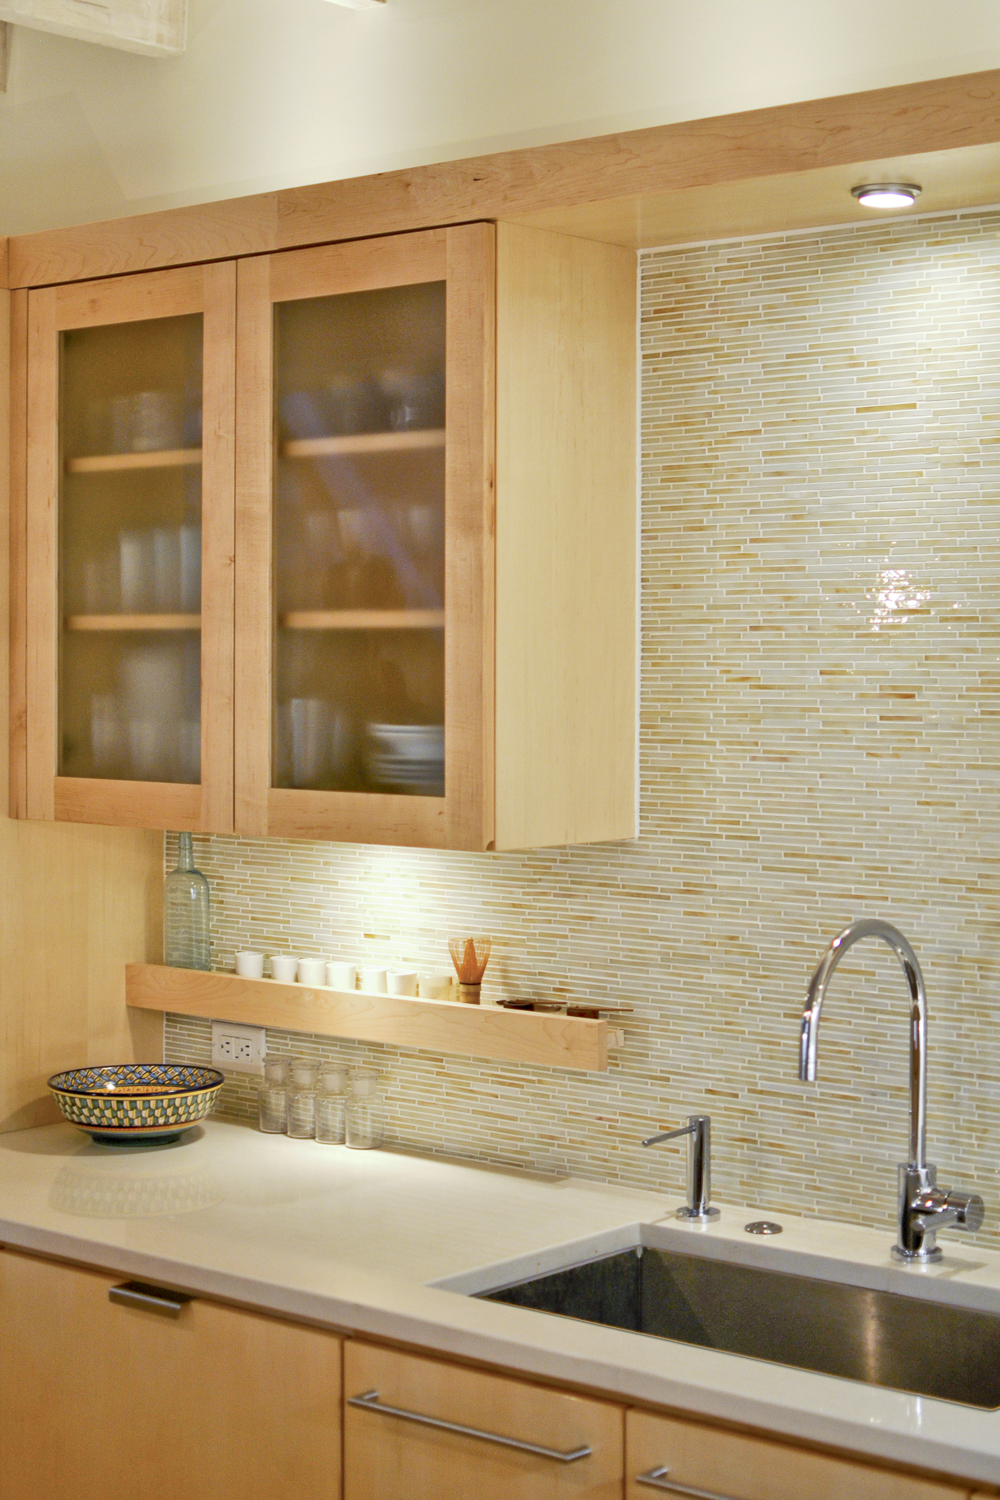 lombard_kitchen-8.jpg